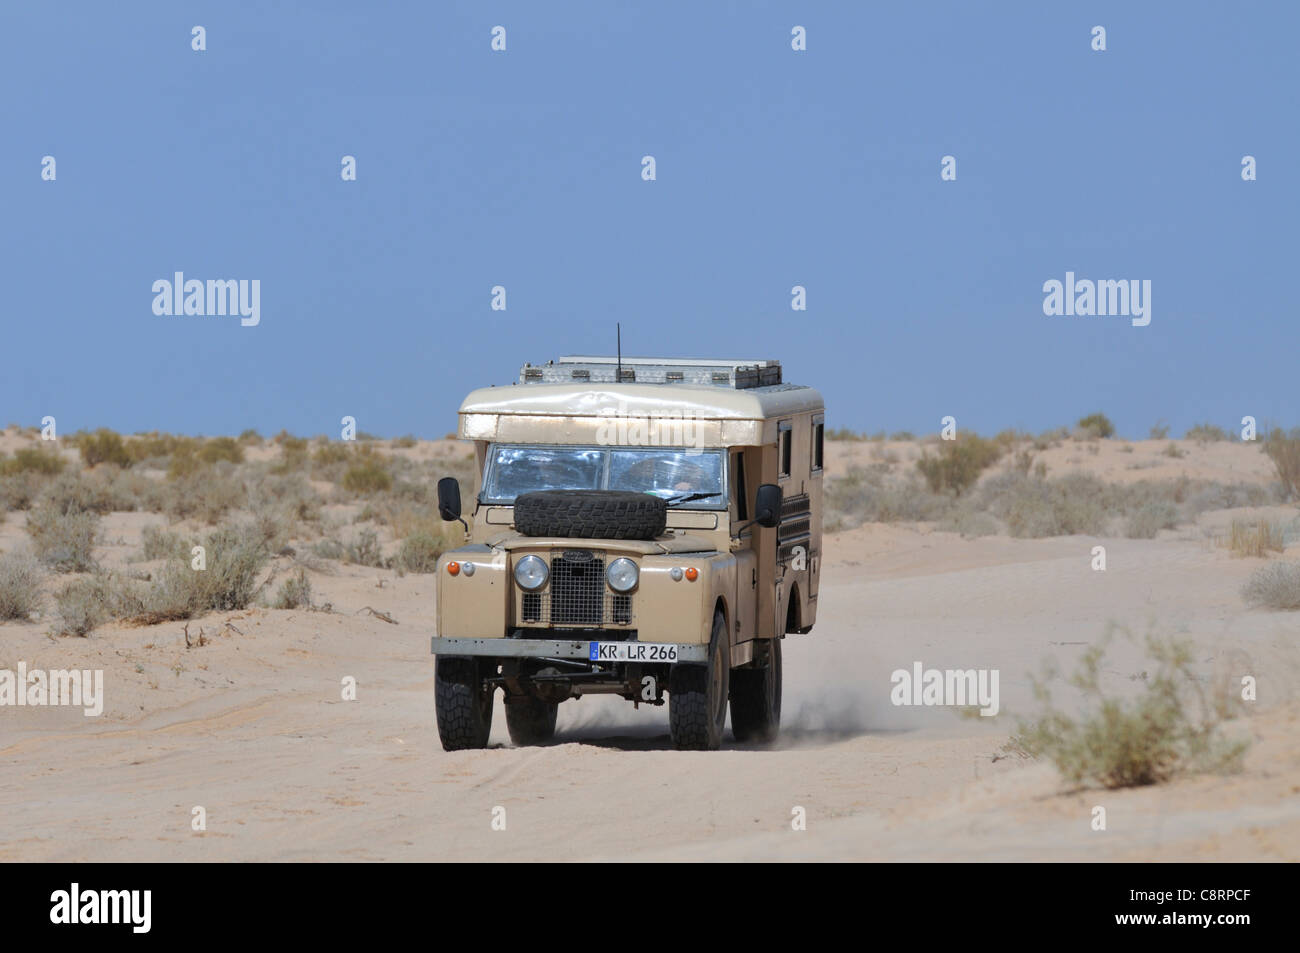 Africa, Tunisia, south of Douz. Land Rover camper van on a journey through the desert from Douz versus Tembaine - Stock Image